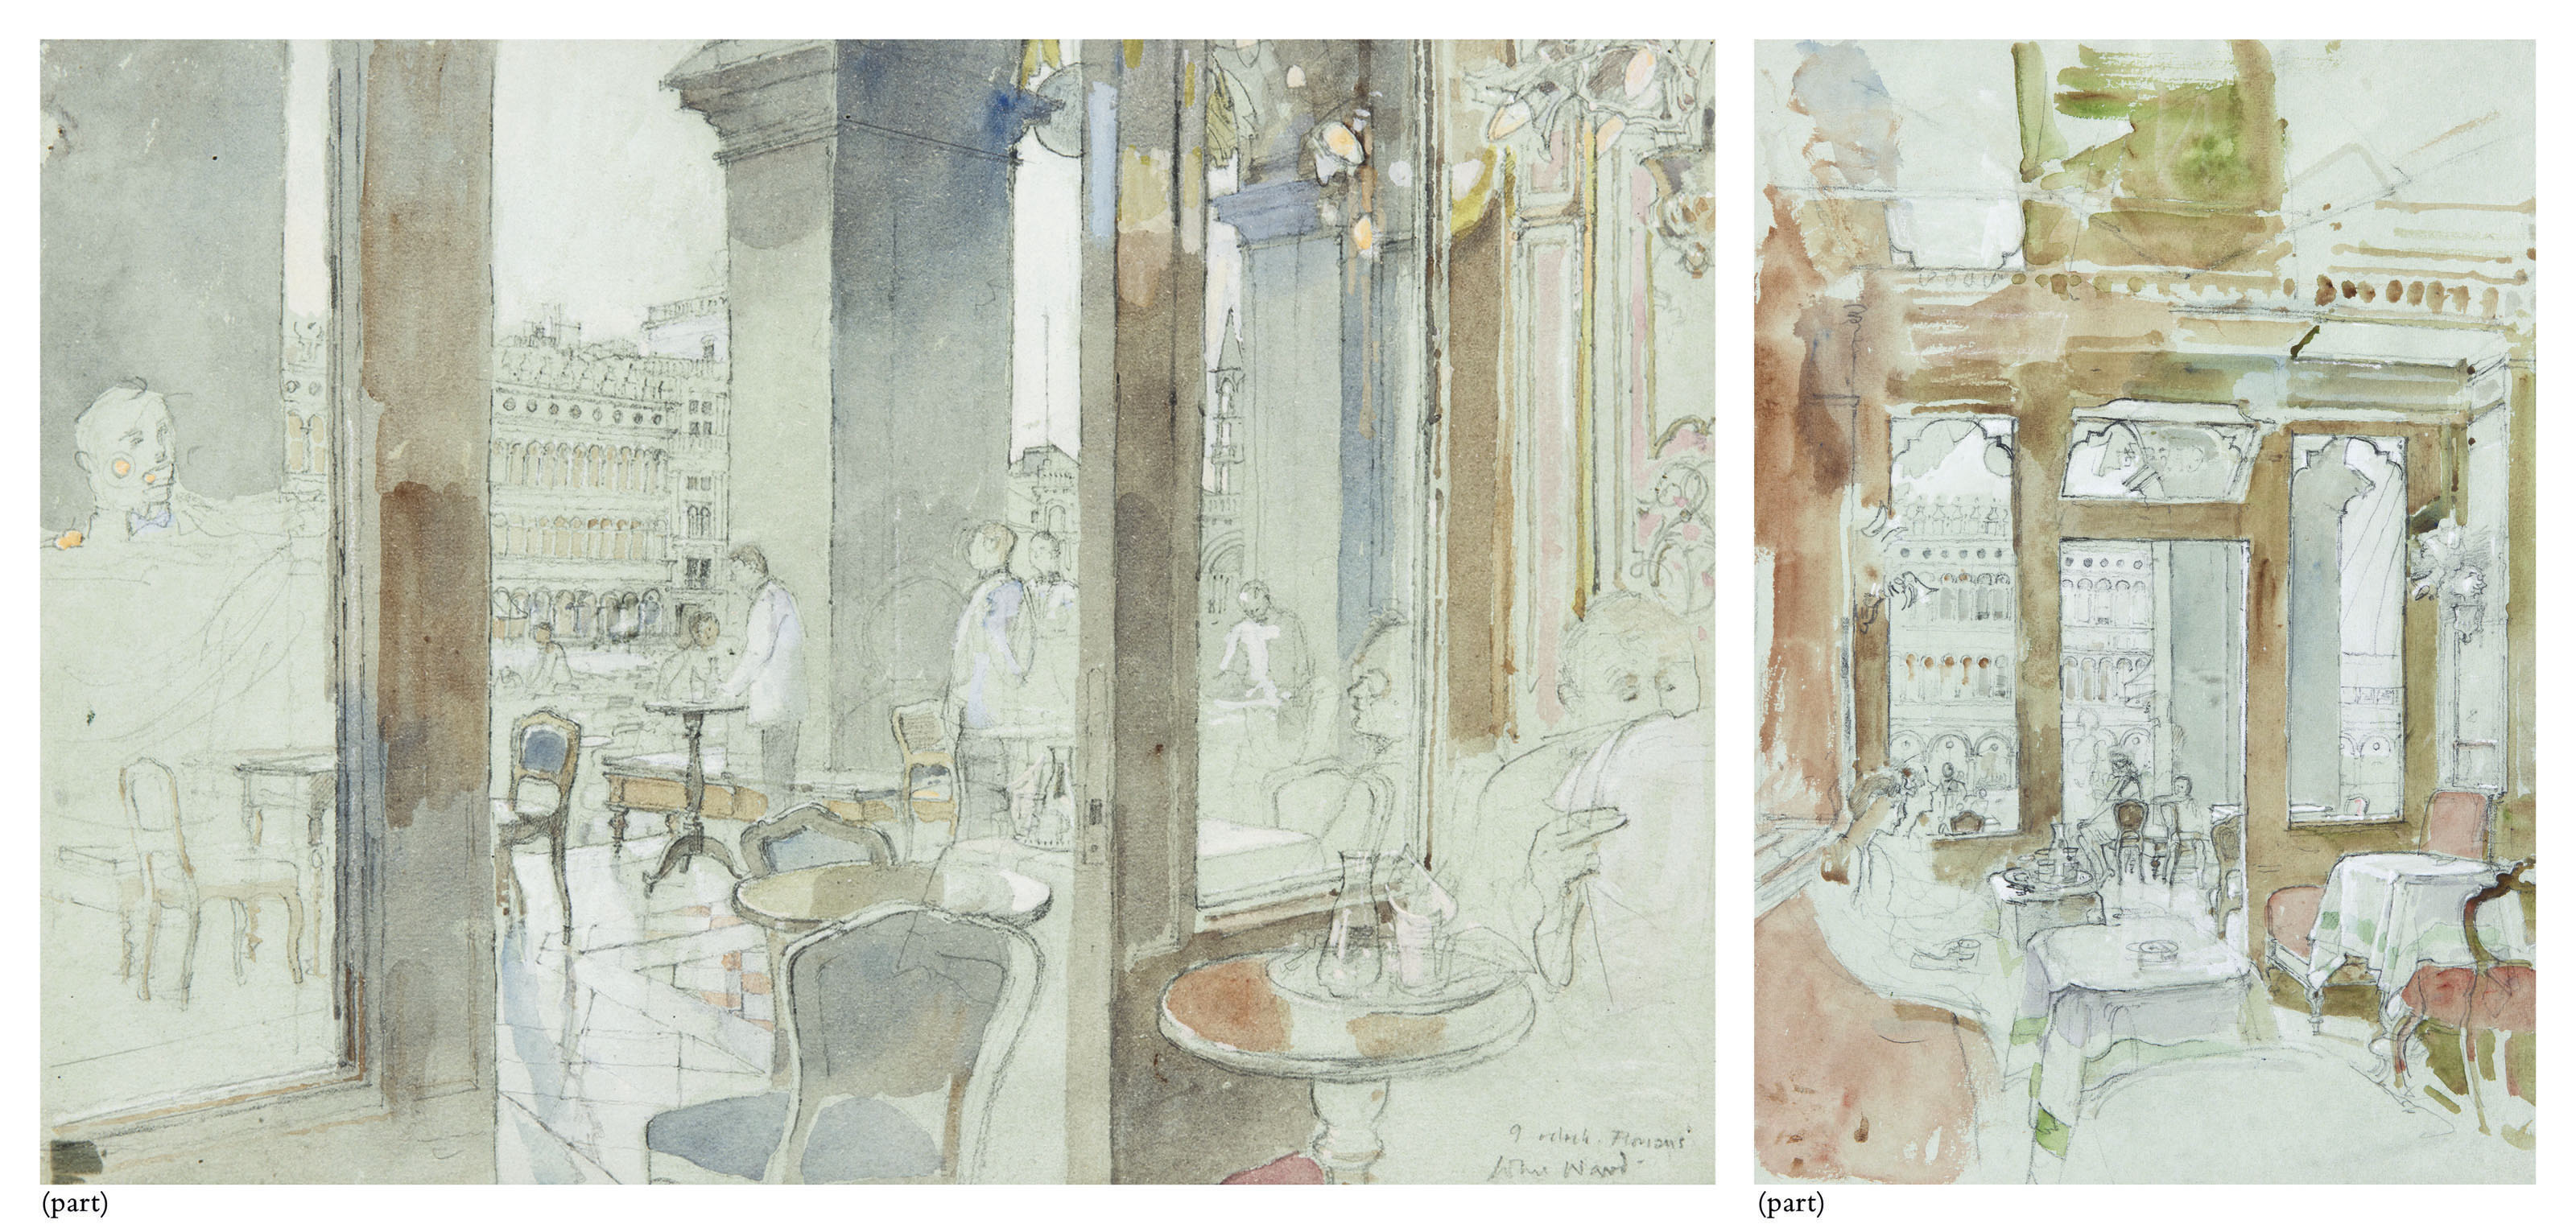 9 o'clock, Florian's (i); Interior of Florian's looking out onto St Mark's Square (ii); Interior of Florian's with figures at tables (iii); The terrace outside Florian's (iv); Figures seated at a table (v)